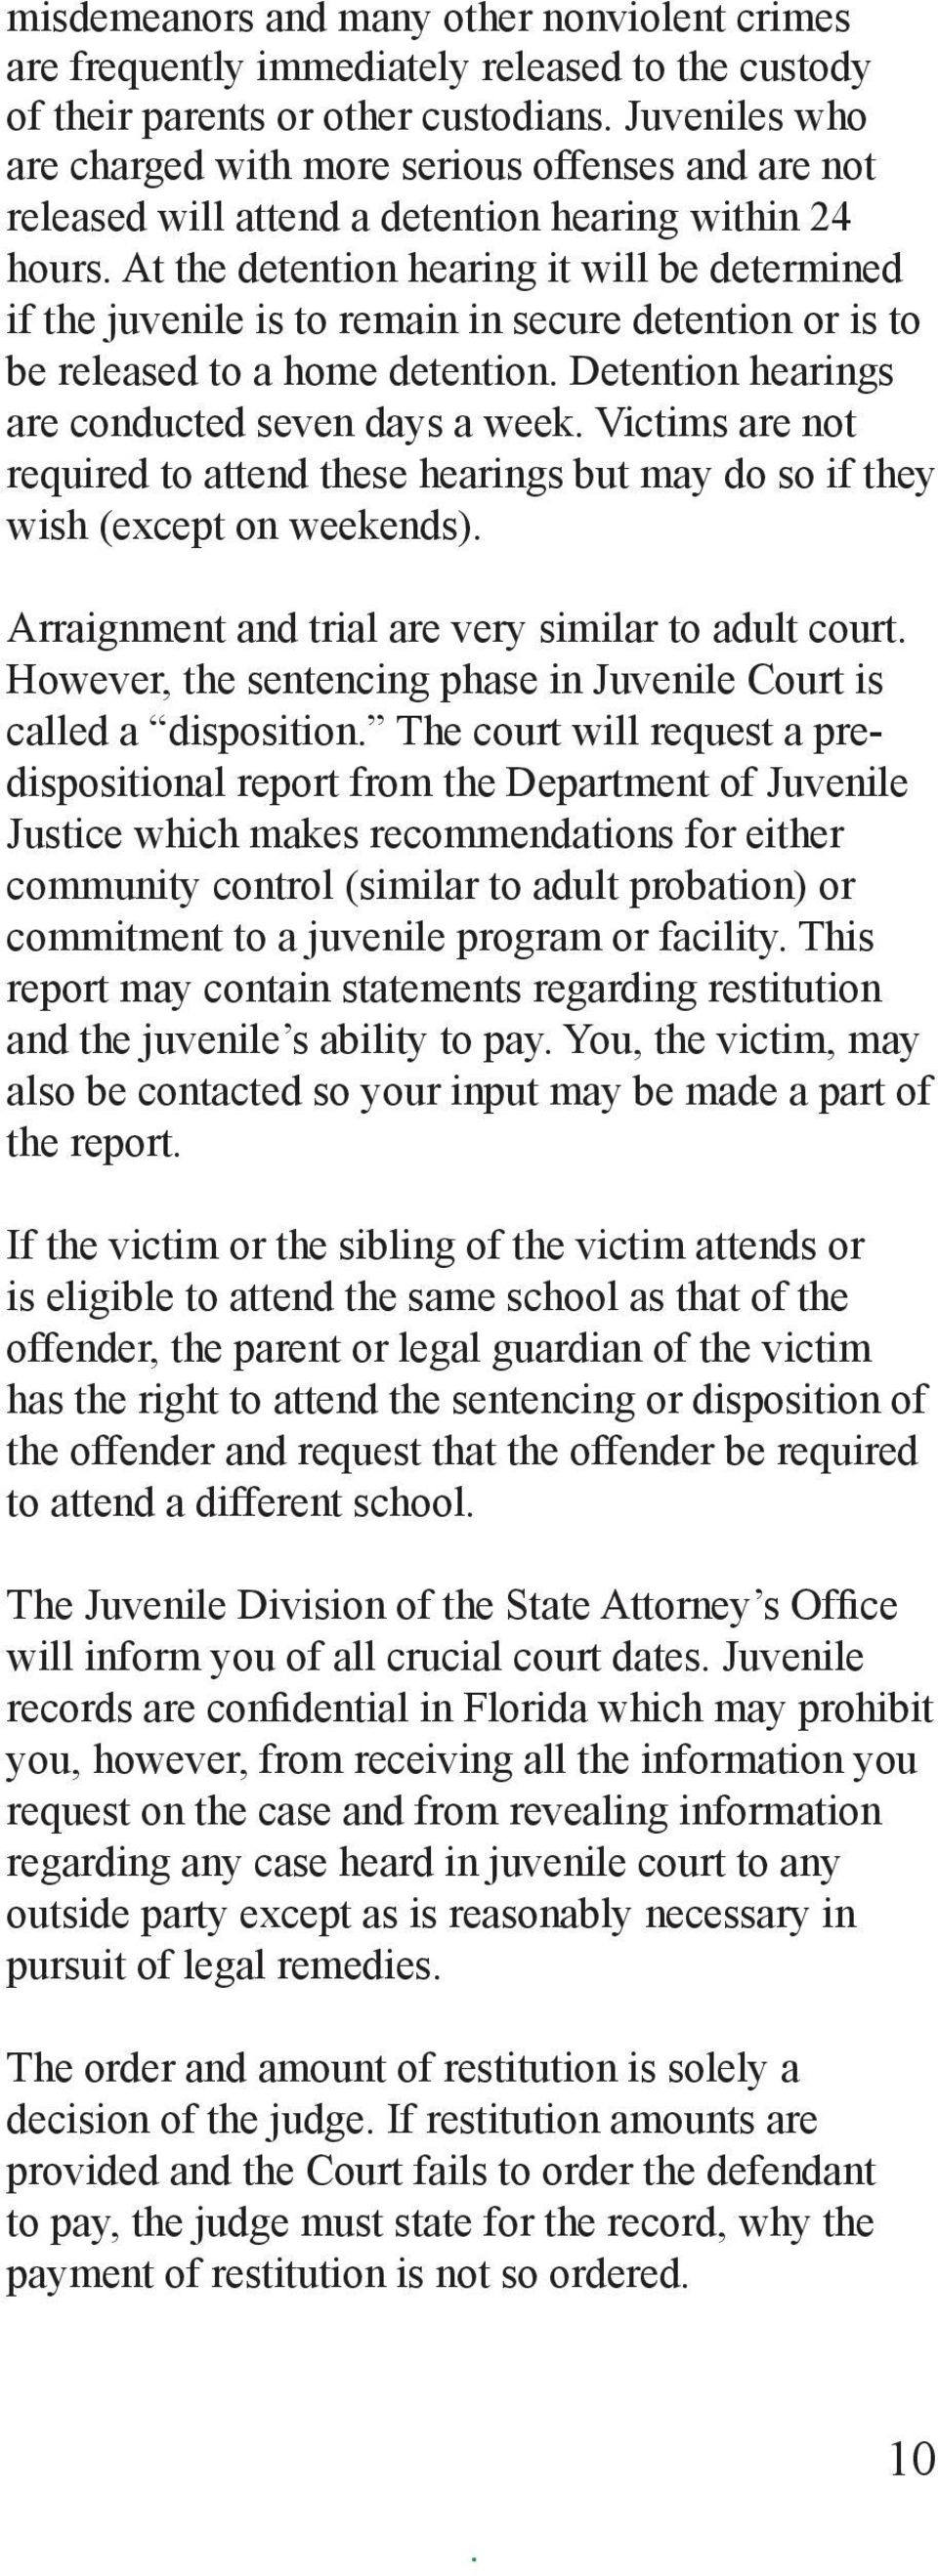 Detention hearings are conducted seven days a week Victims are not required to attend these hearings but may do so if they wish (except on weekends) Arraignment and trial are very similar to adult